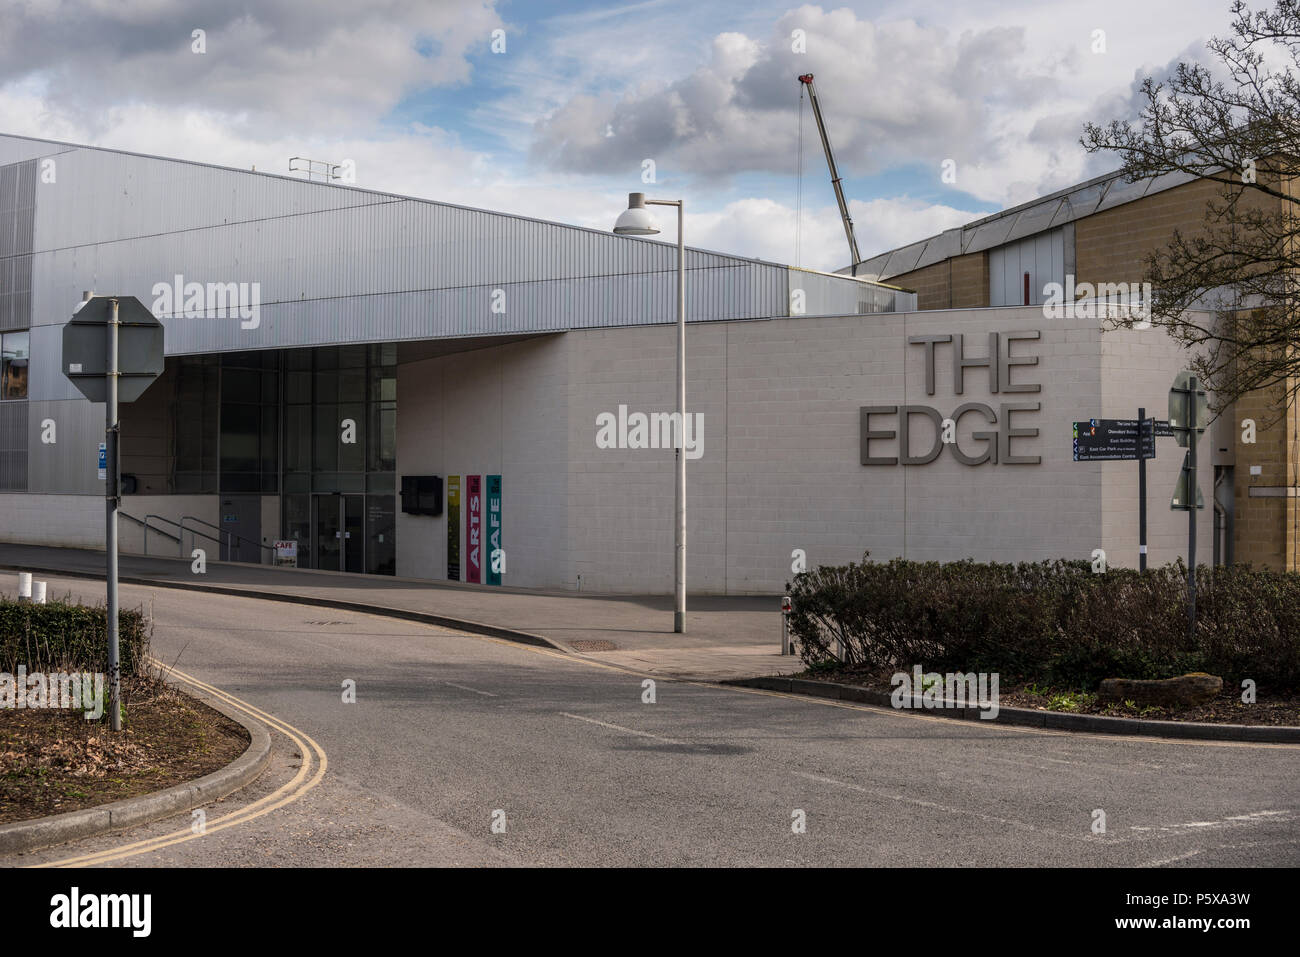 The Edge, new arts and management building at University of Bath Claverton Down campus, Somerset, UK - Stock Image